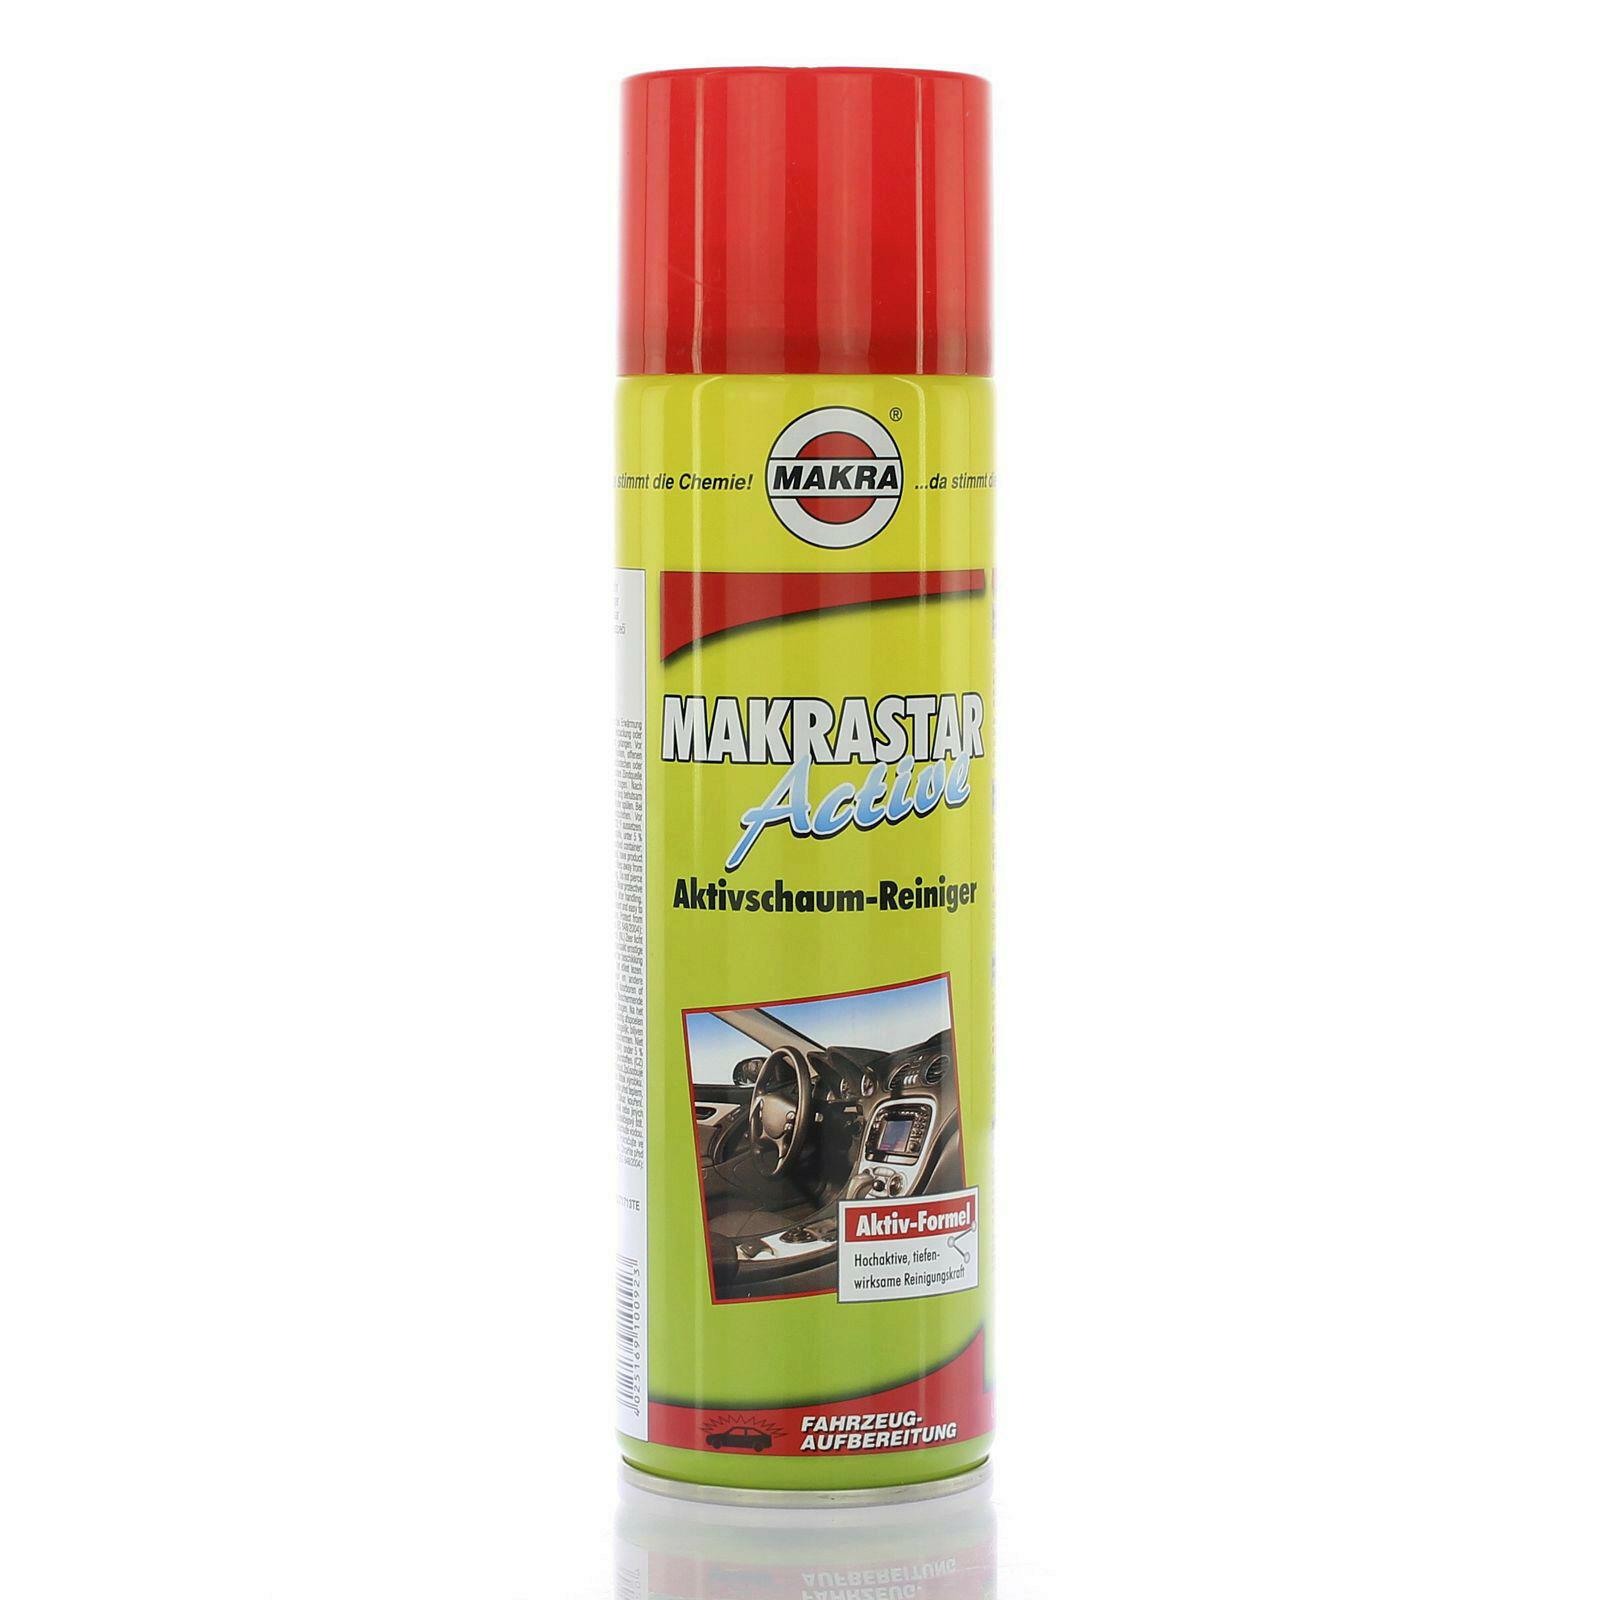 MAKRASTAR ACTIVE AKTIVESCHAUM-REINIGER 500ml